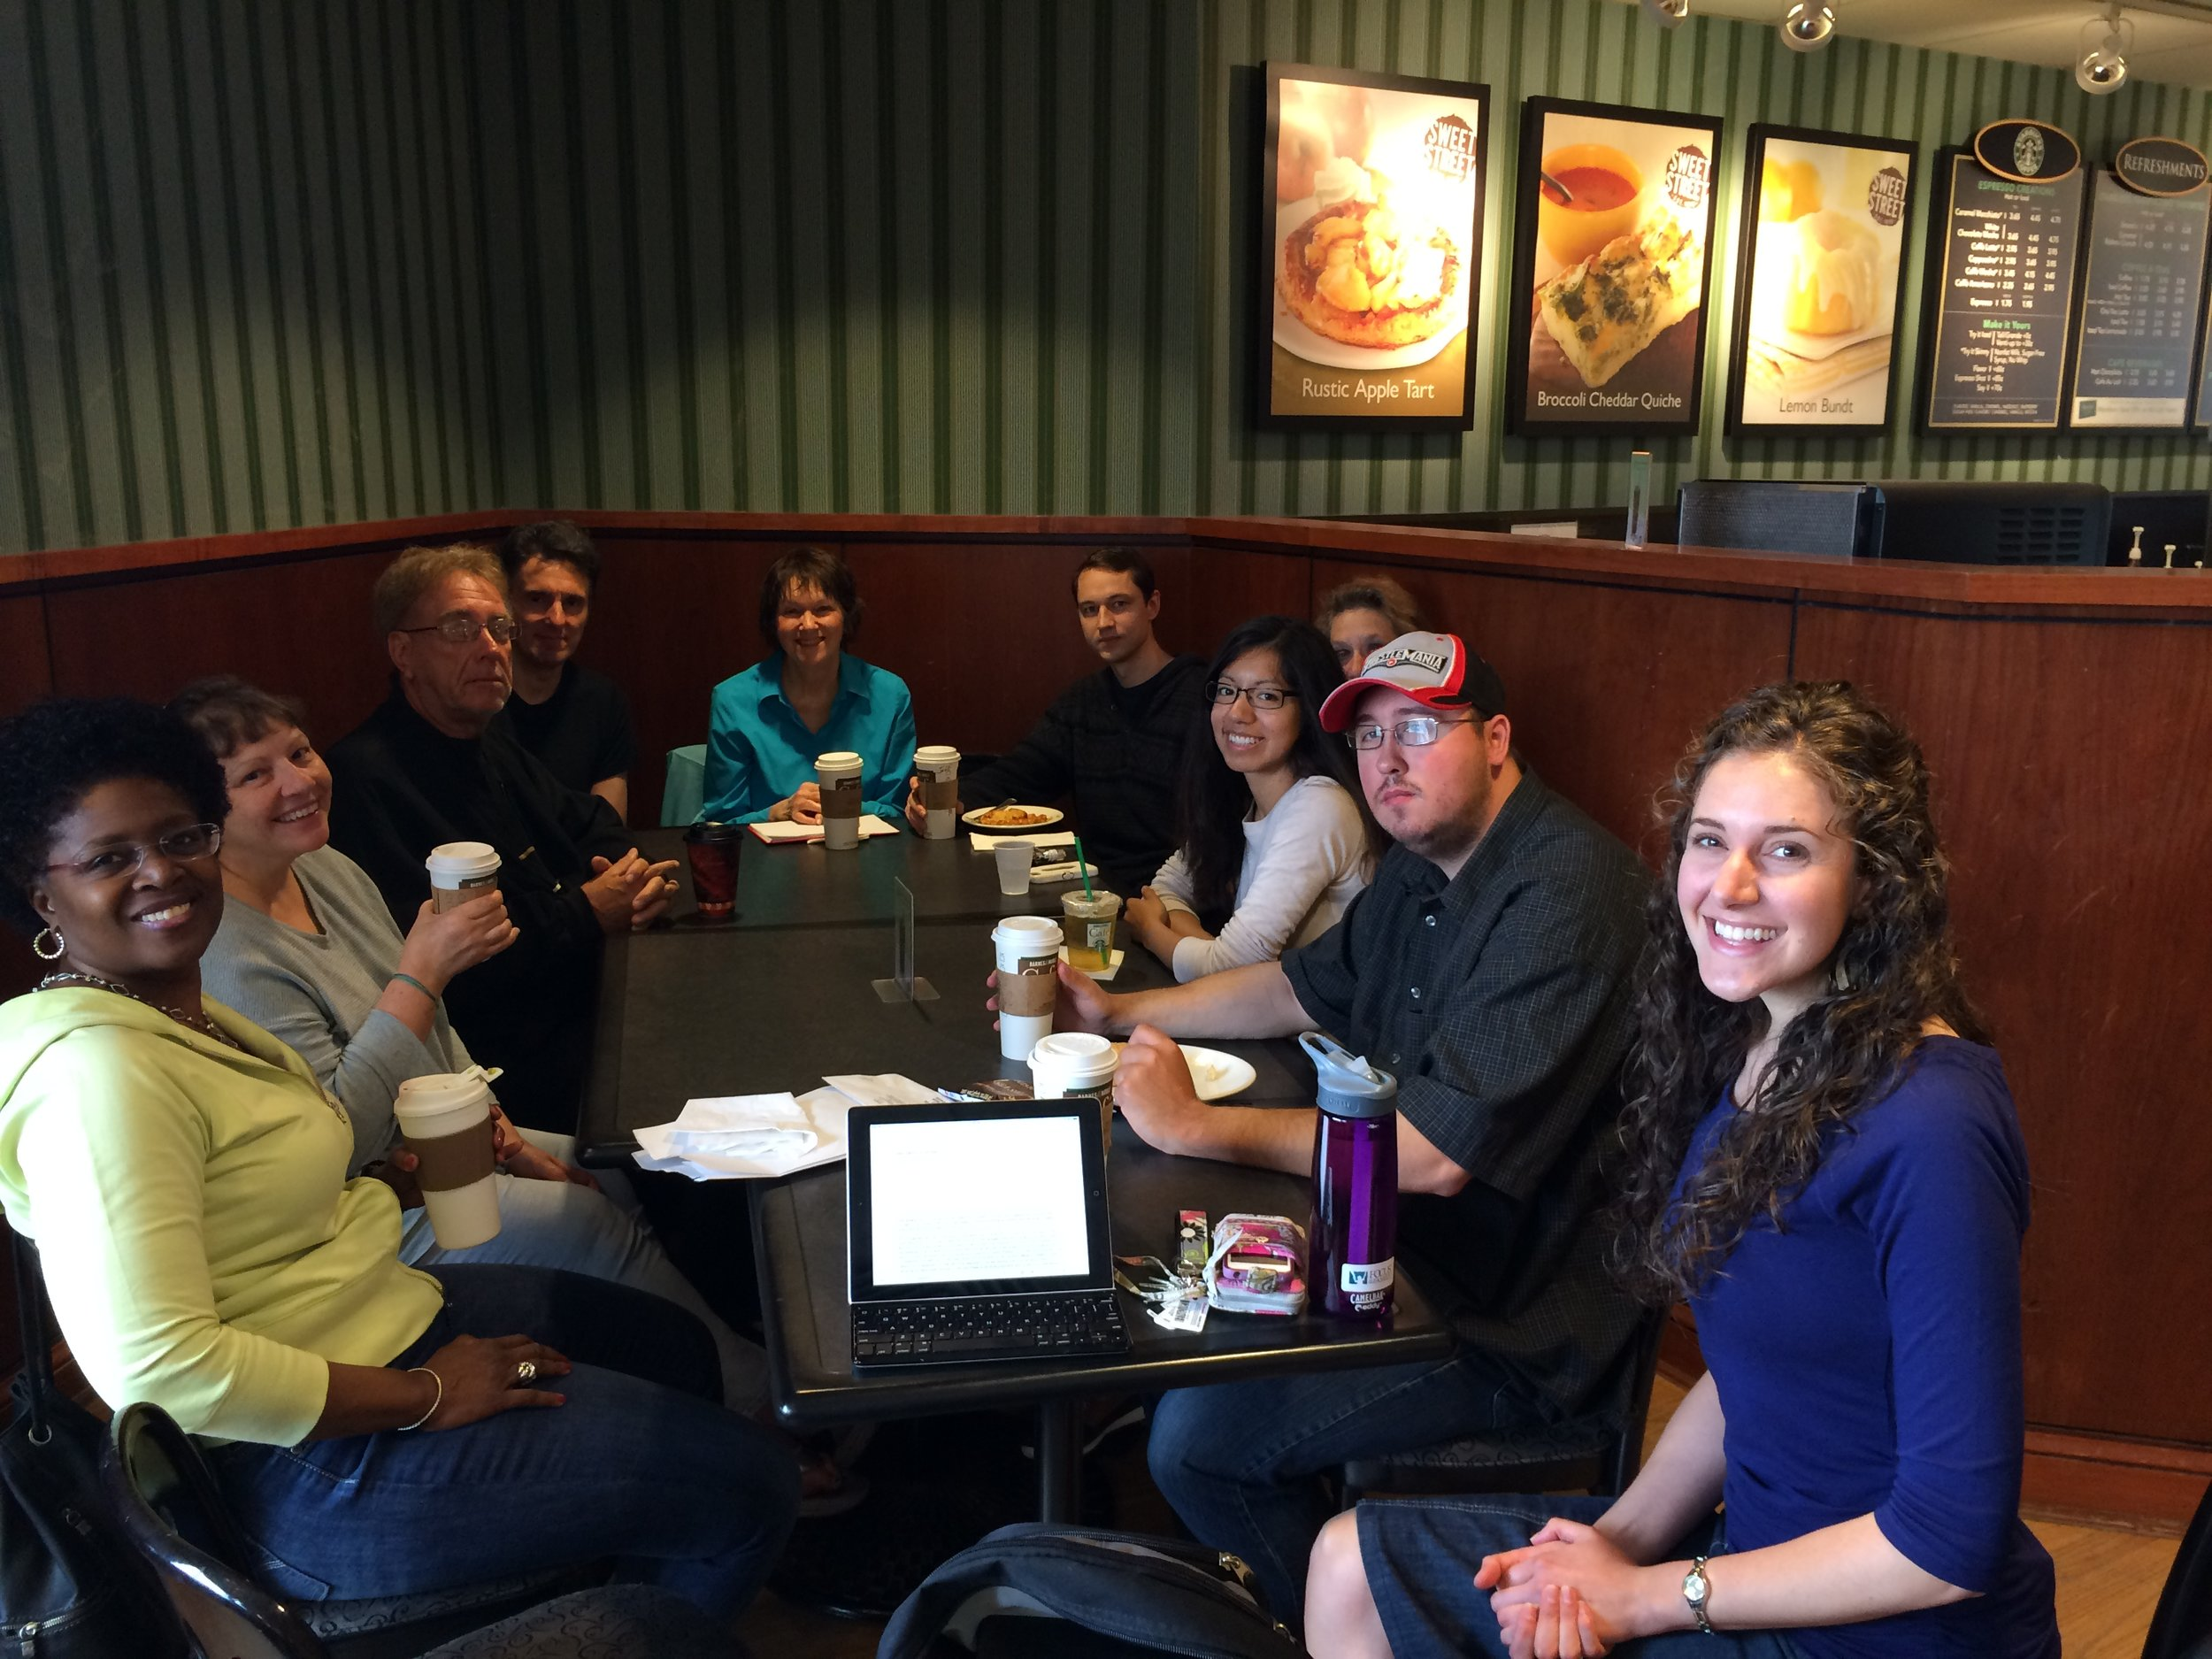 Our meetup groups meet at the Barnes & Noble Cafe in downtown Naperville.